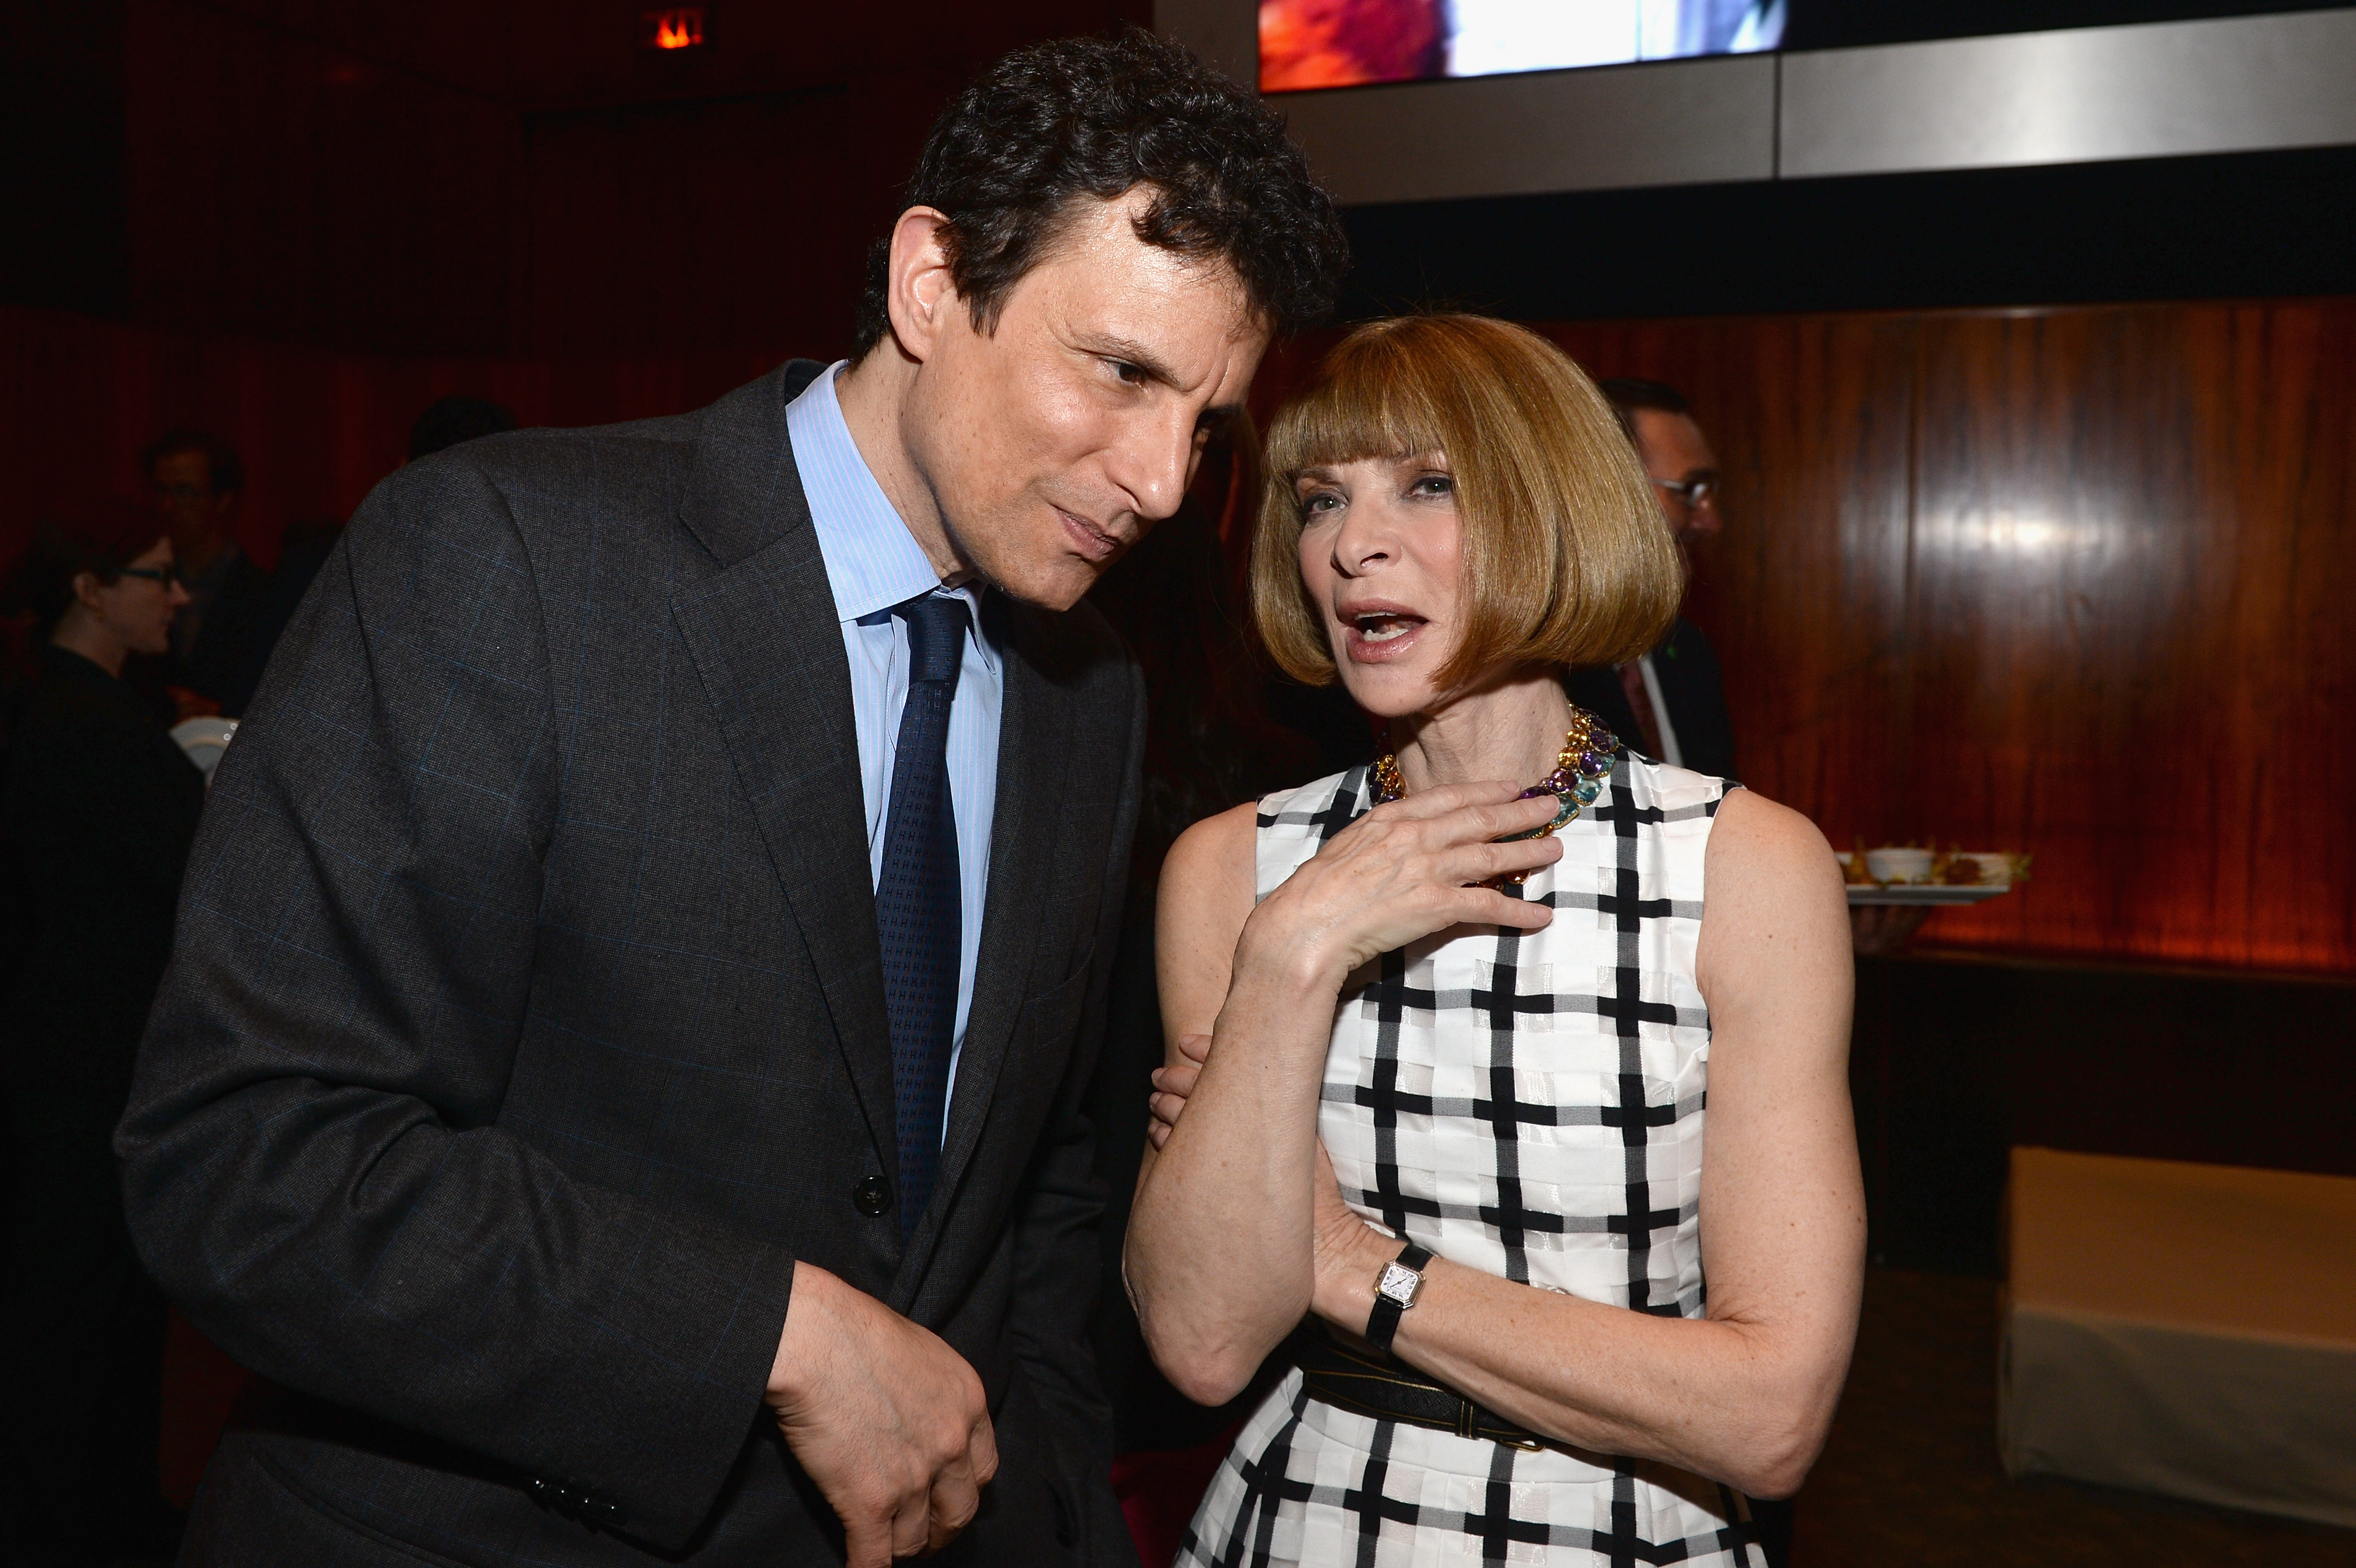 New Yorker editor David Remnick and Vogue editor Anna Wintour.